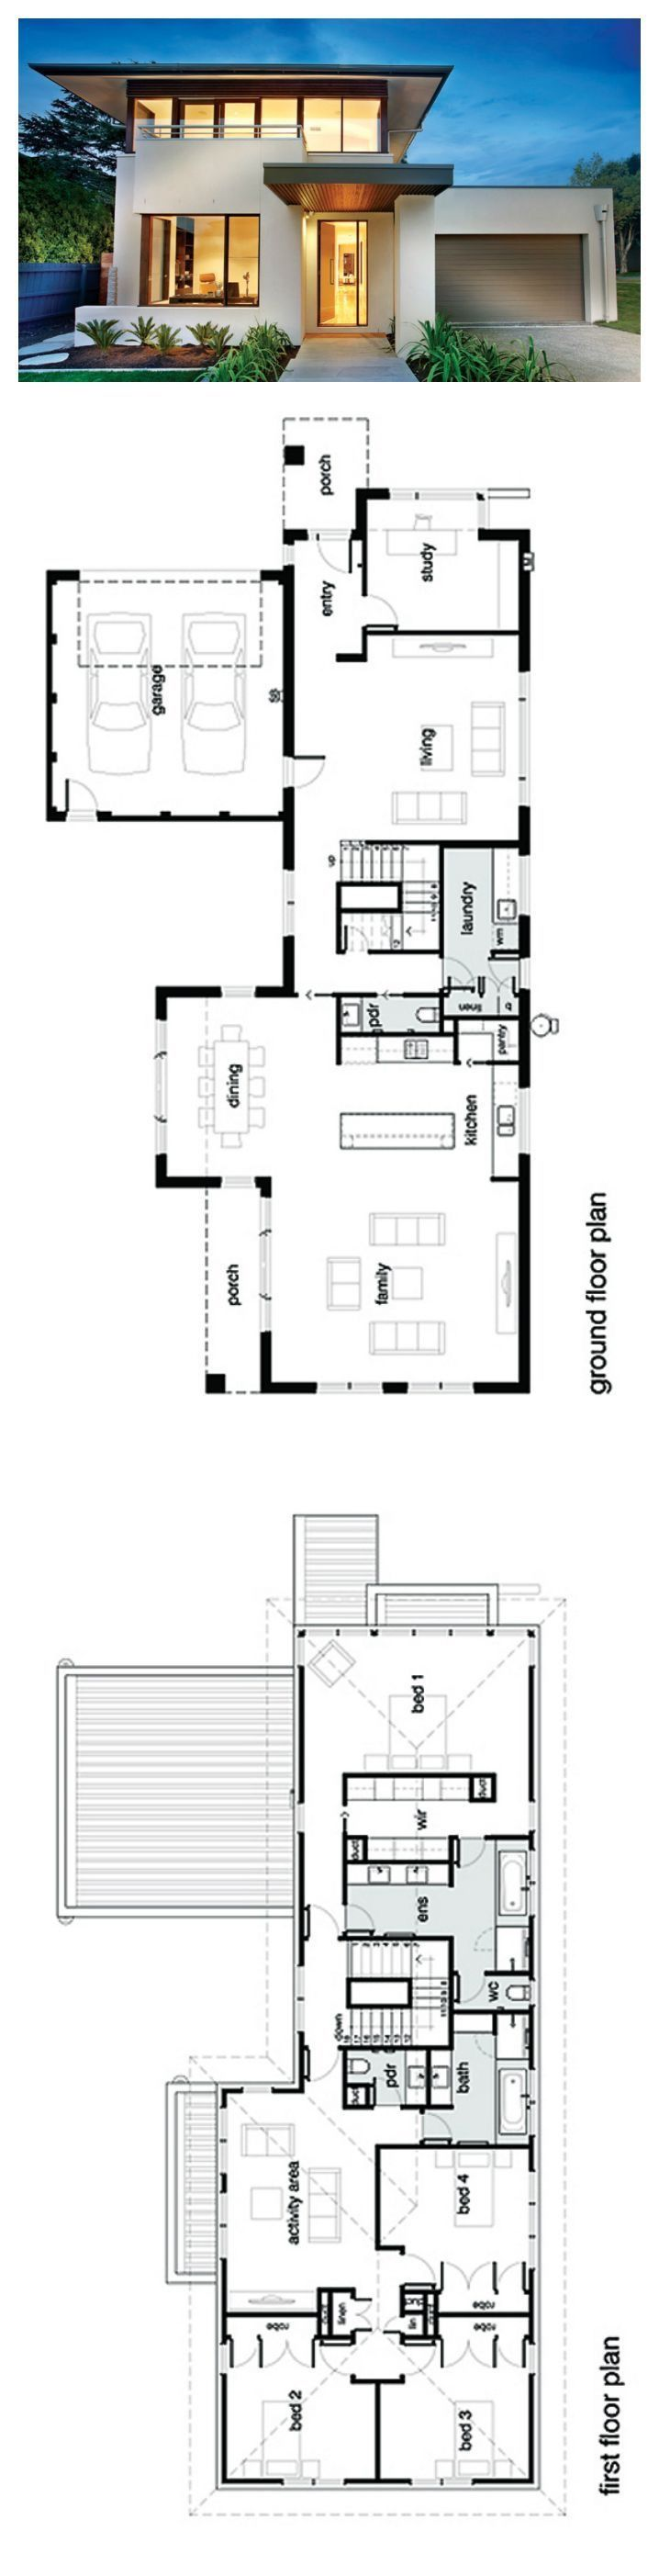 two storey 4 bedroom modern house plansmodern houseshouse plans 2